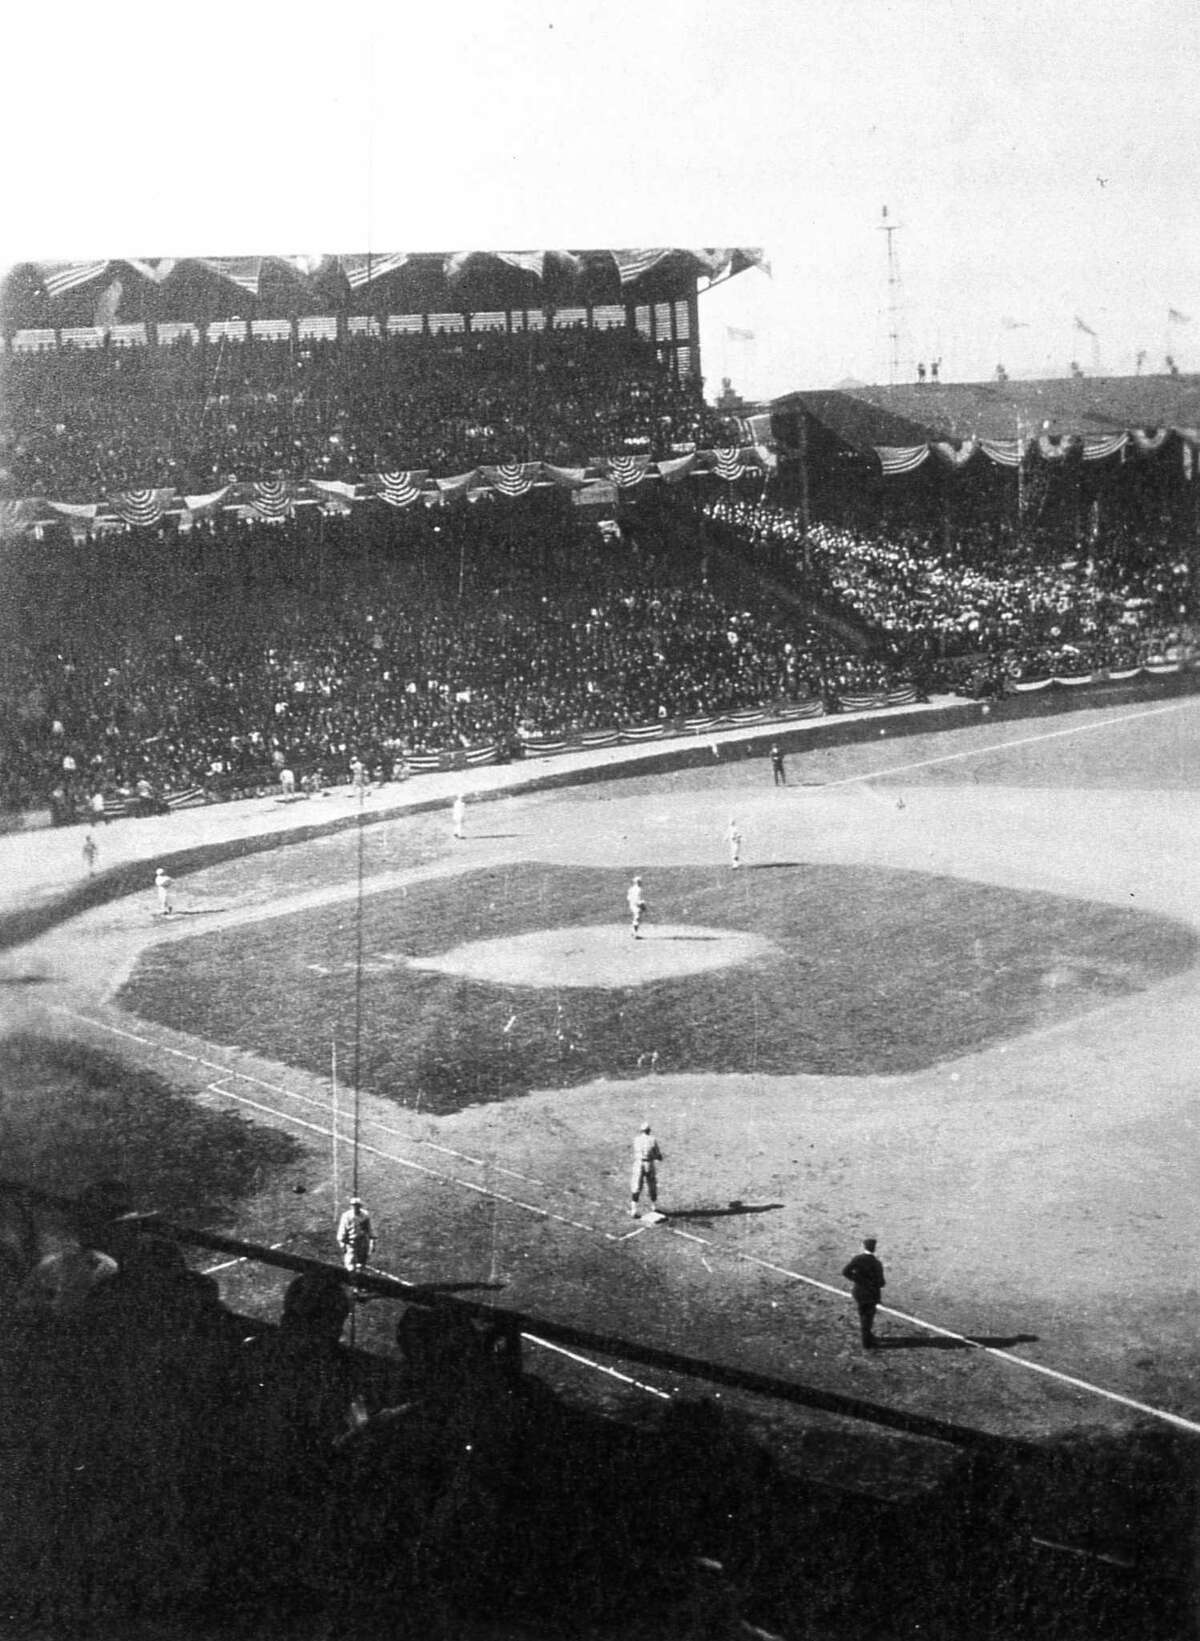 CHICAGO, IL - SEPTEMBER 5-11, 1918. General action of the Boston Red Sox and Chicago Cubs during the 1918 World Series in September at Comiskey Park Chicago, Illinois. (Photo by Mark Rucker/Transcendental Graphics, Getty Images)